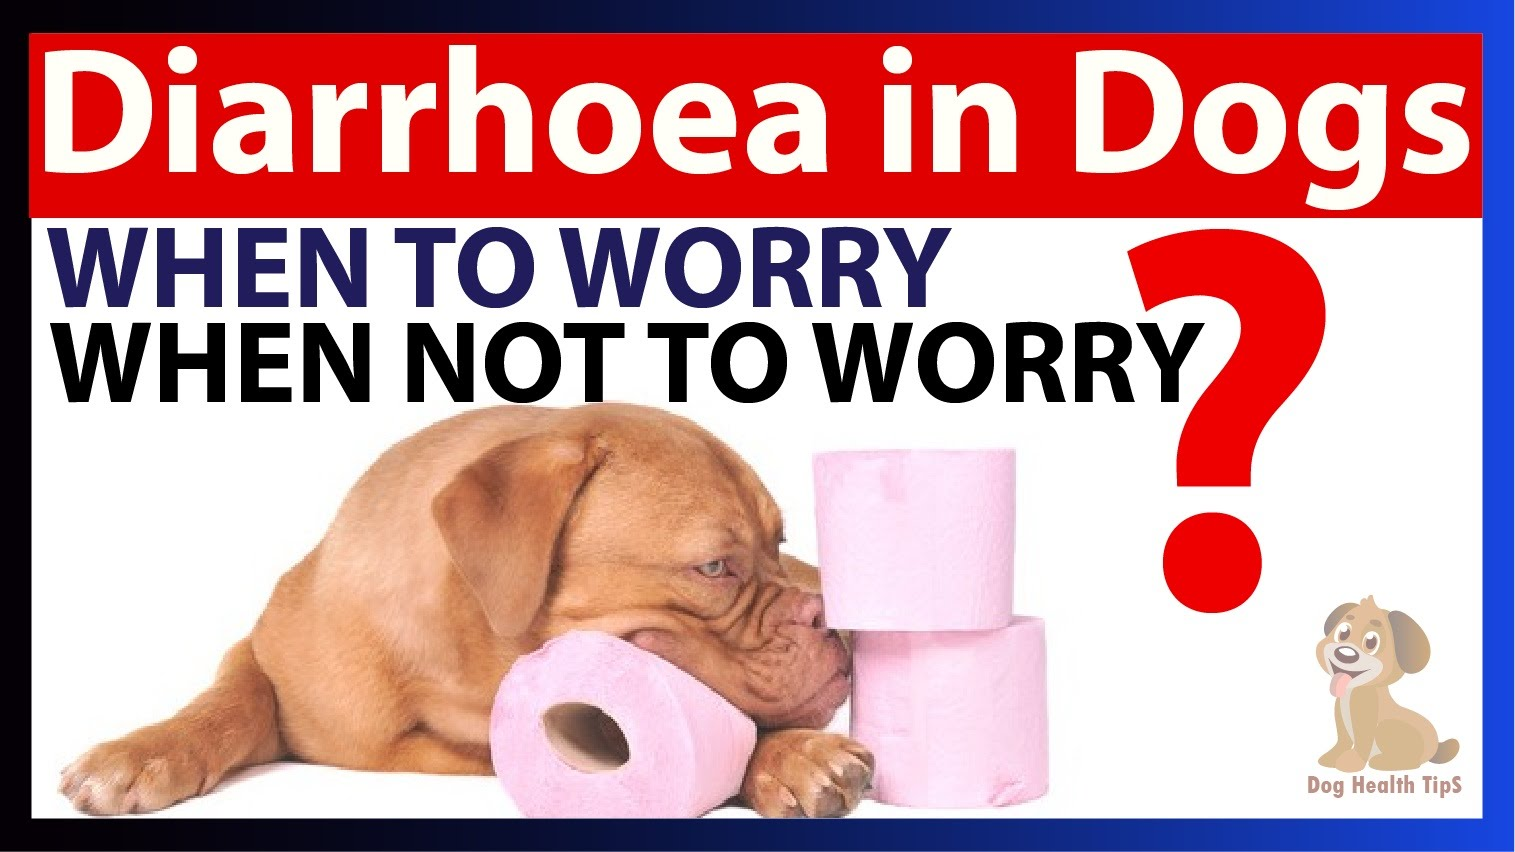 Can You Give Dogs Anything For Diarrhea